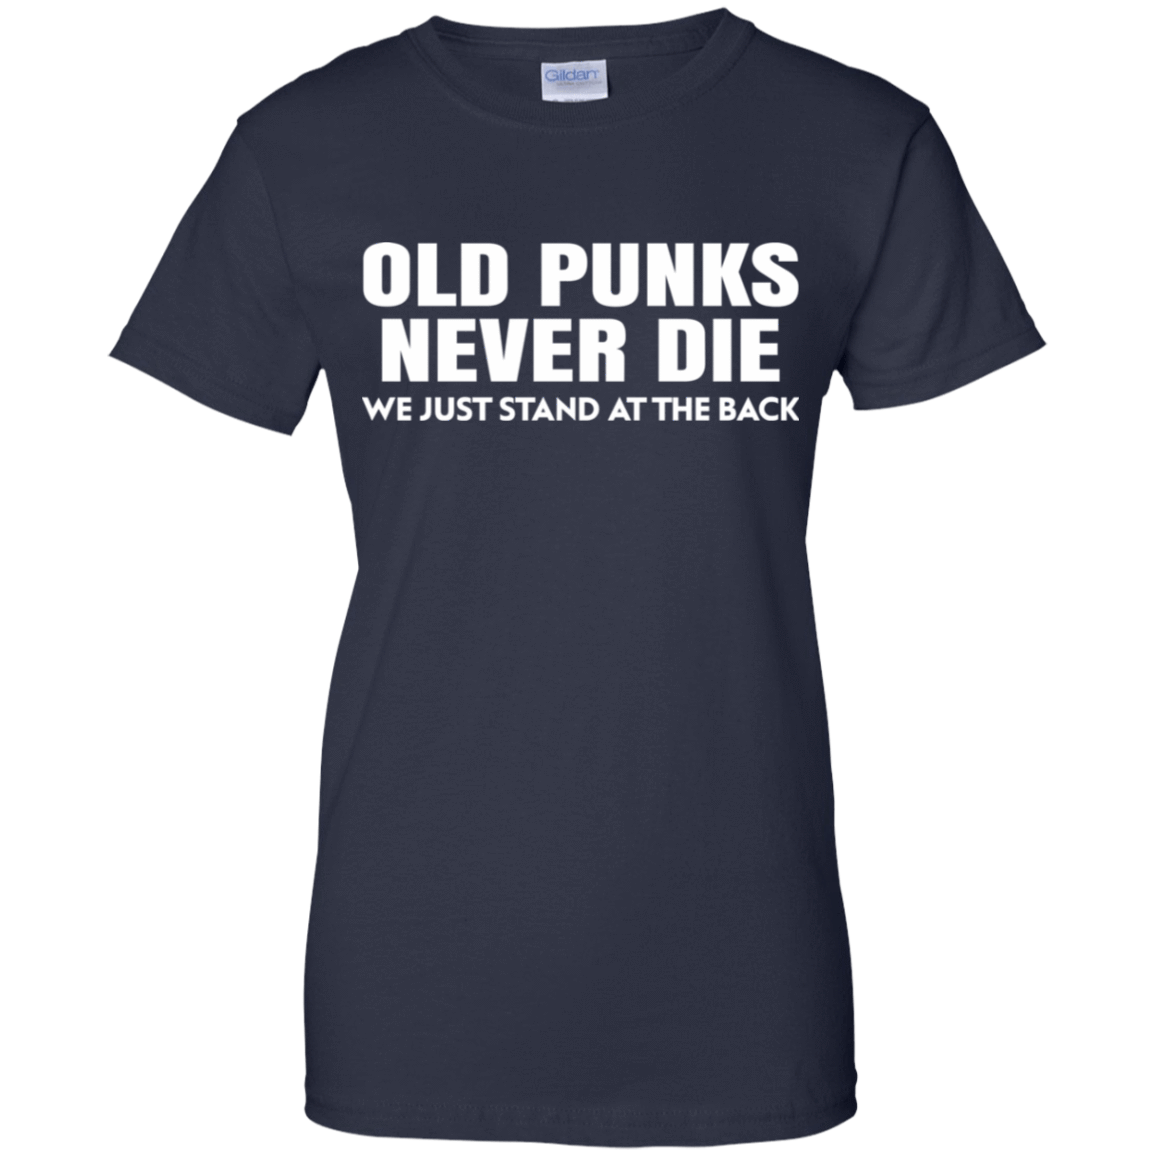 Old Punks Never Die We Just Stand At The Back 939-9259-73420976-44765 - Tee Ript